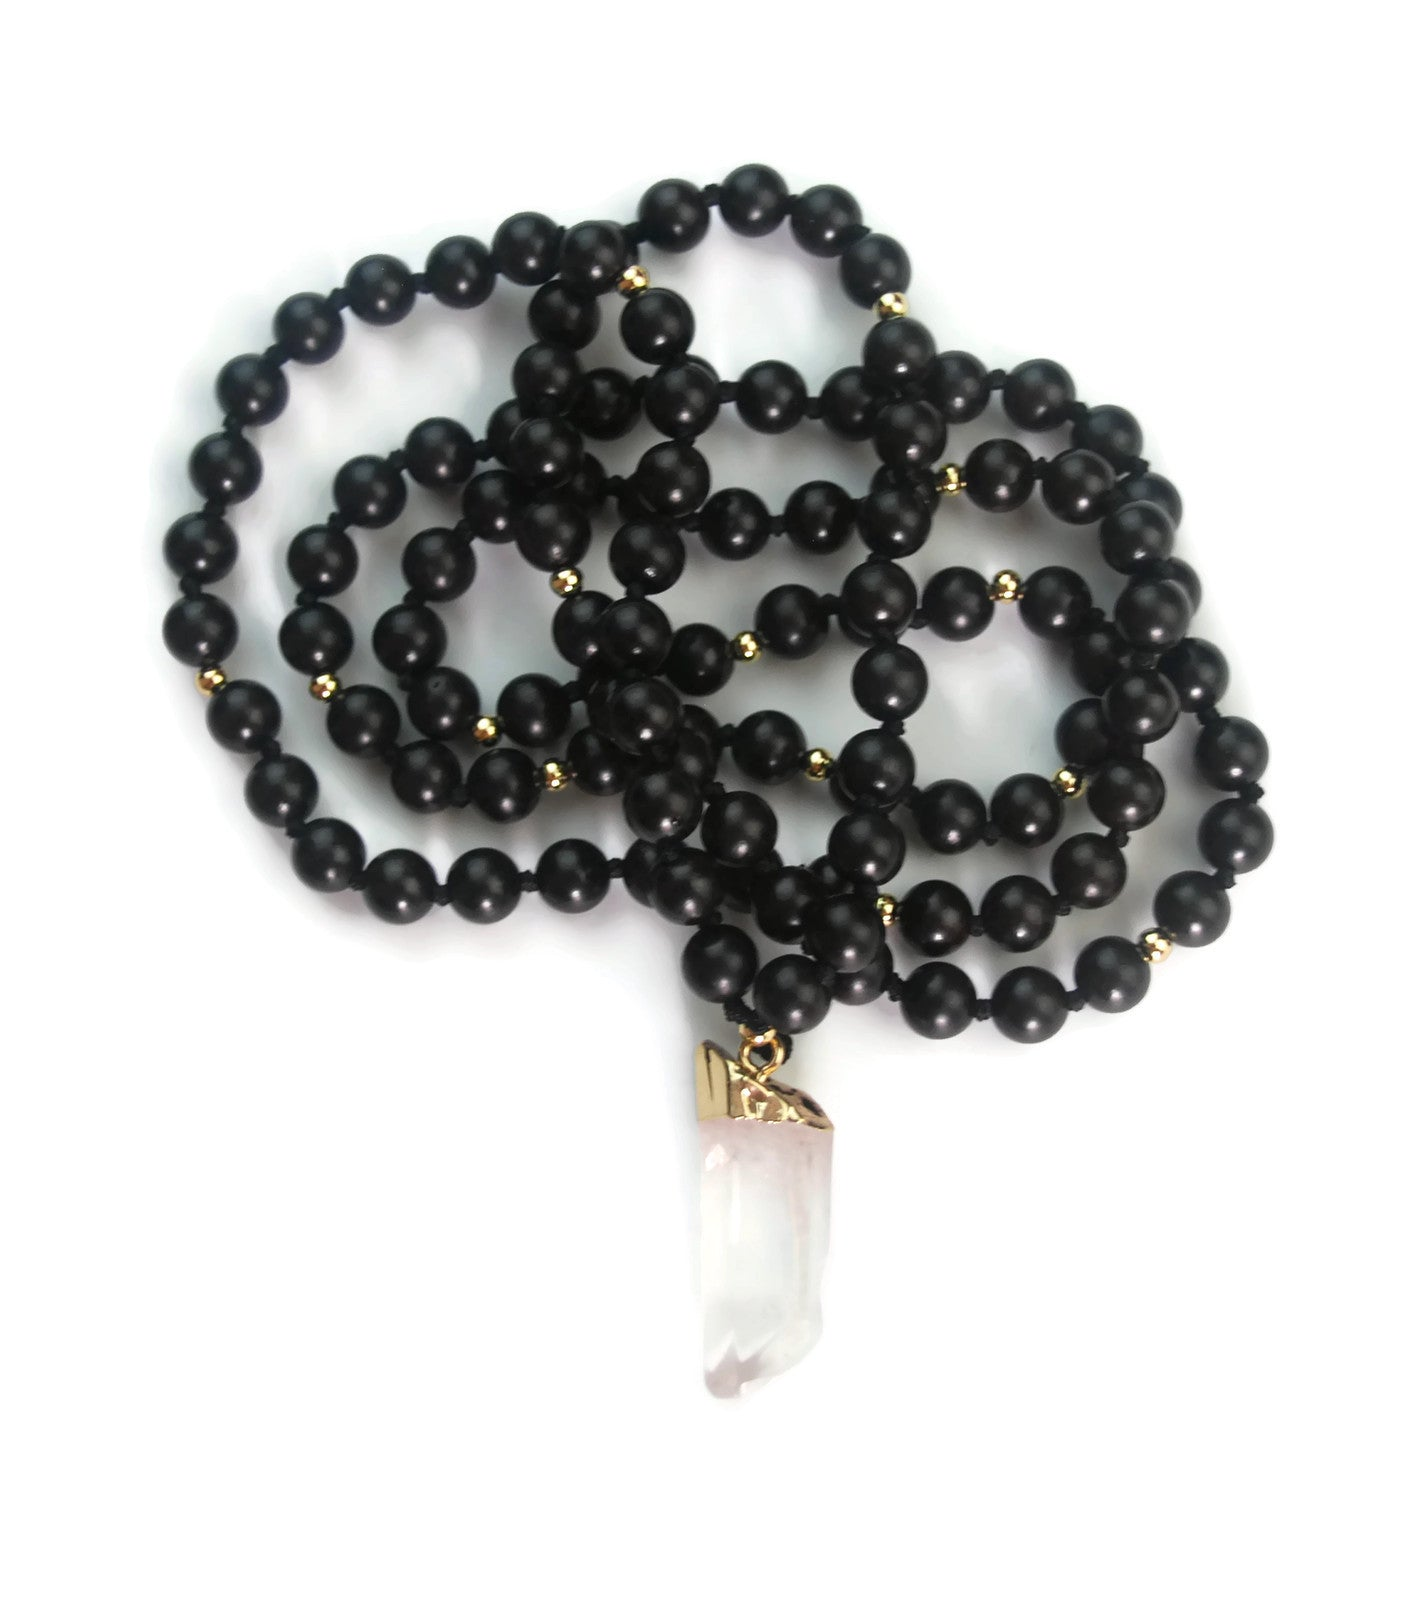 Enlightenment Line 8mm Ebony Wood with Crystal Pendant 24k Gold Knotted 108 Meditation Mala Necklace Crown Chakra